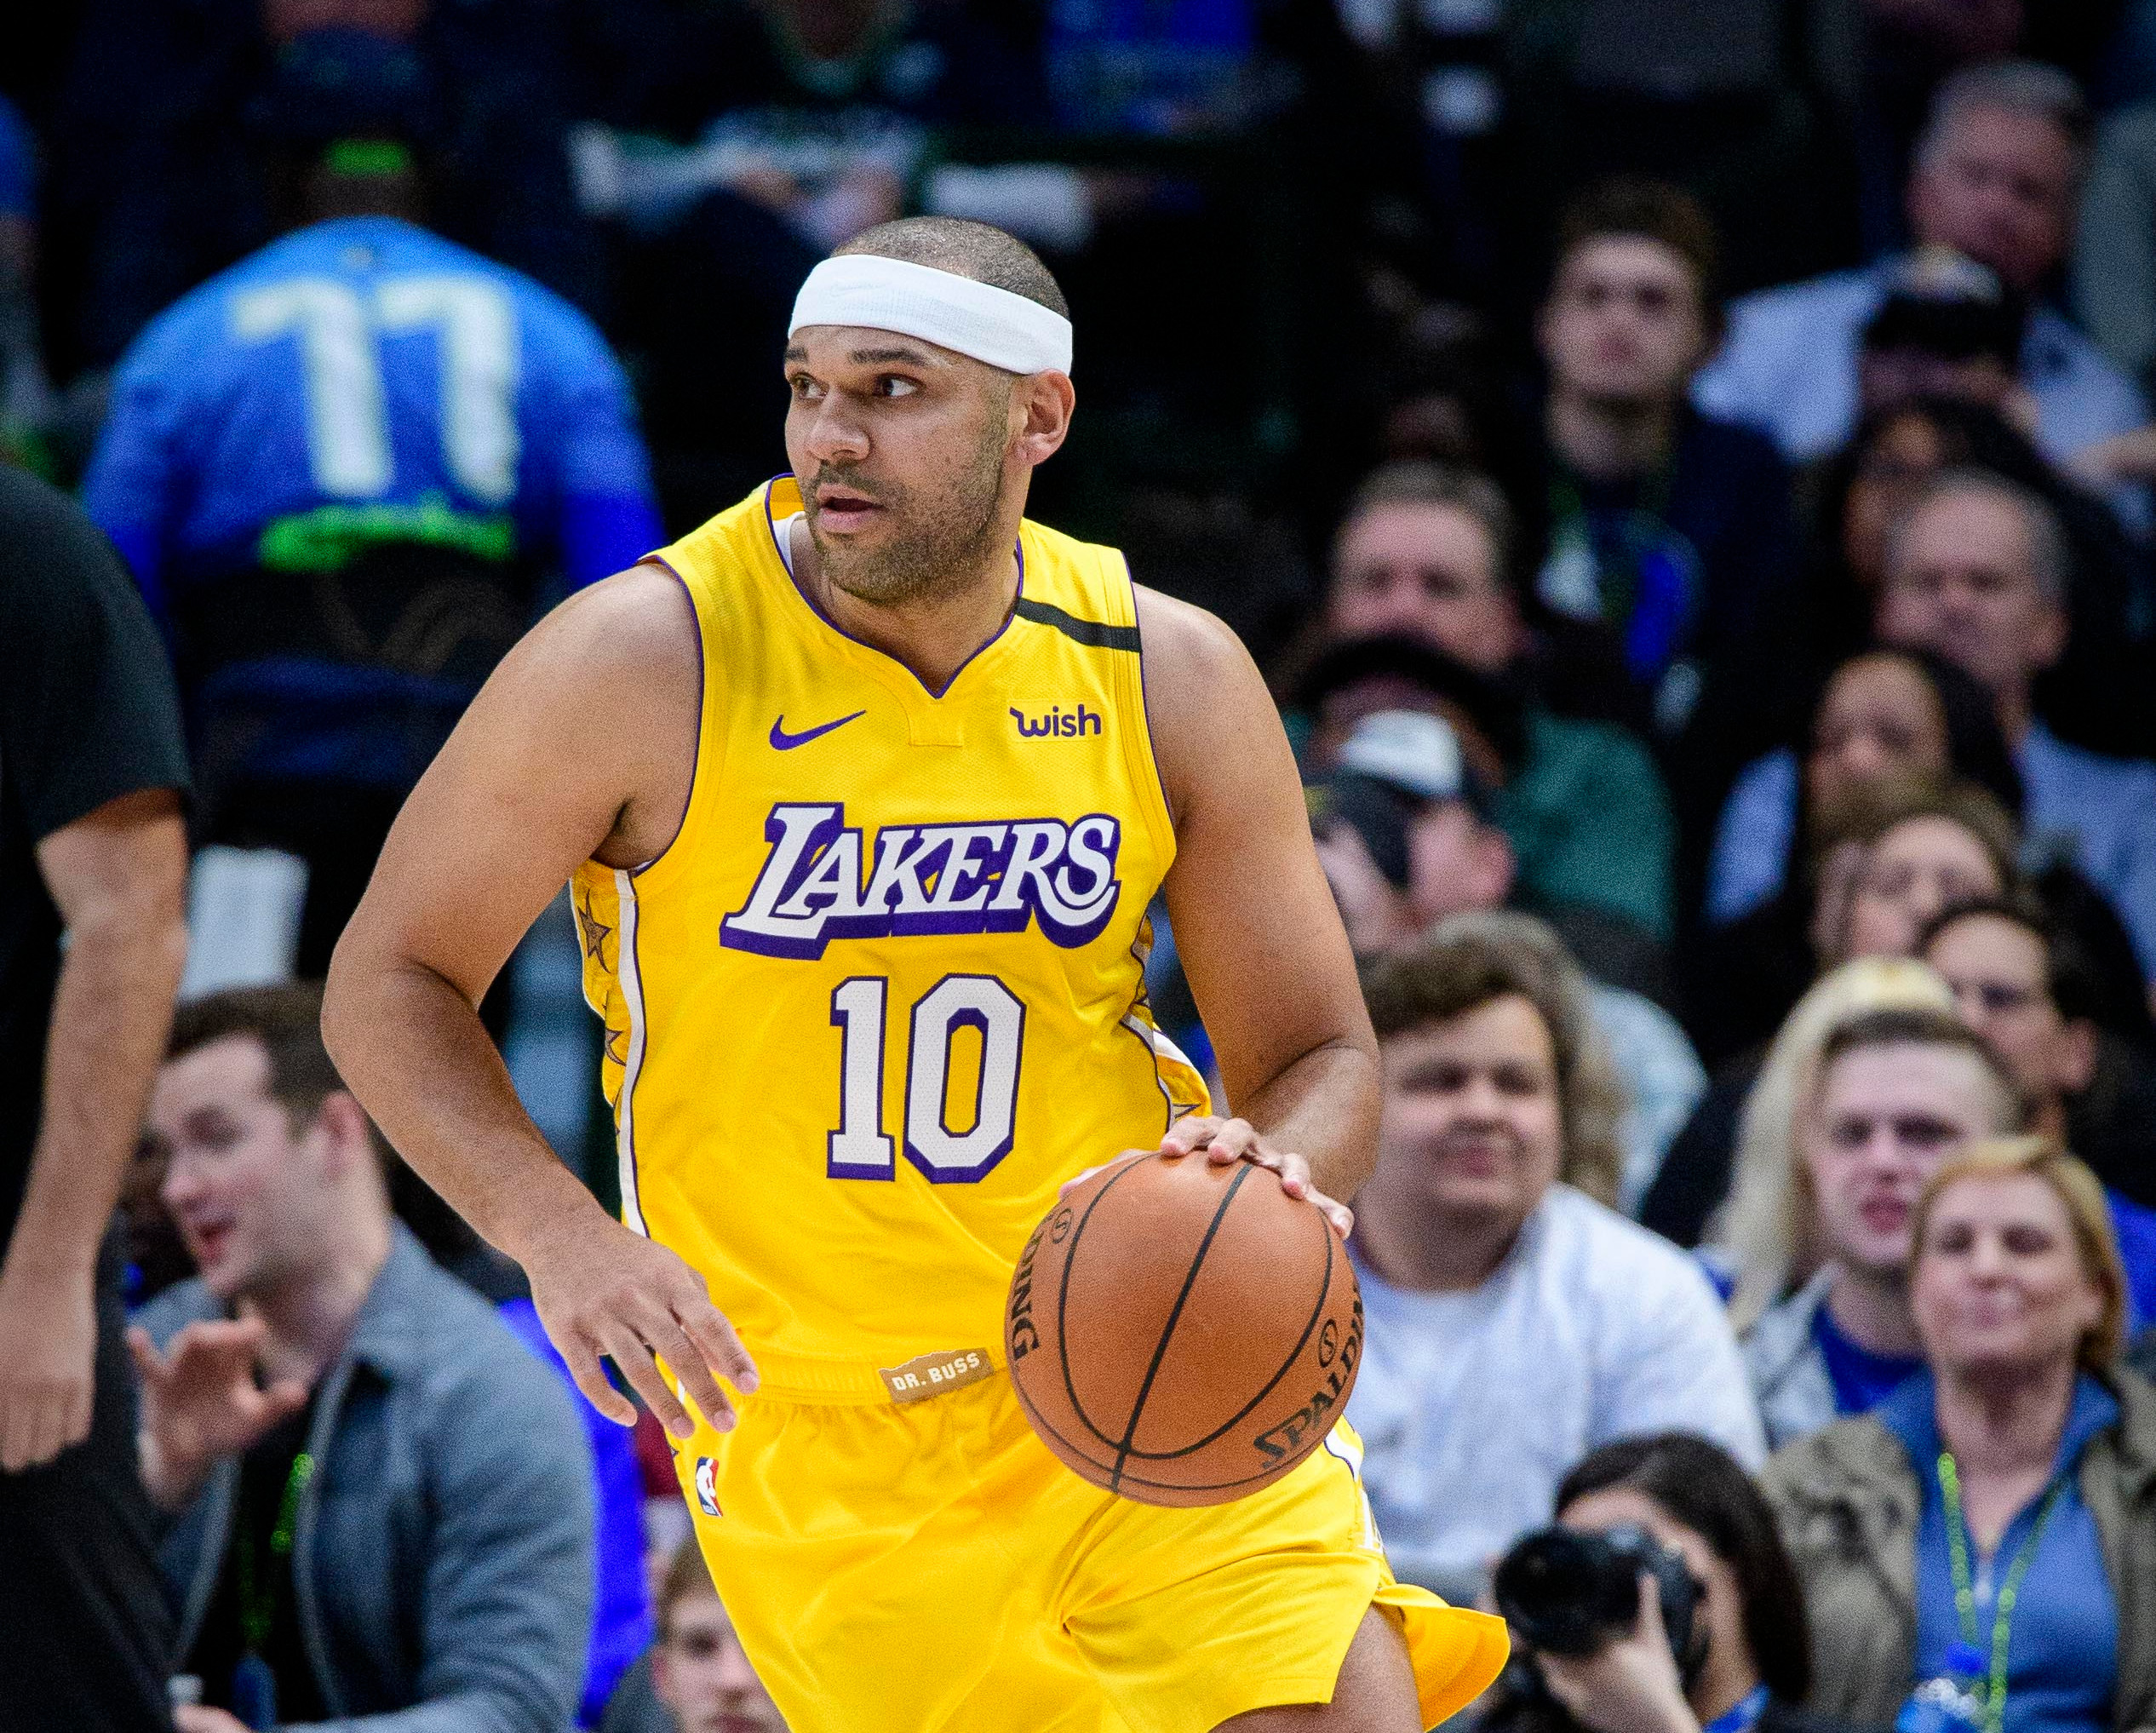 Jared Dudley, Los Angeles Lakers